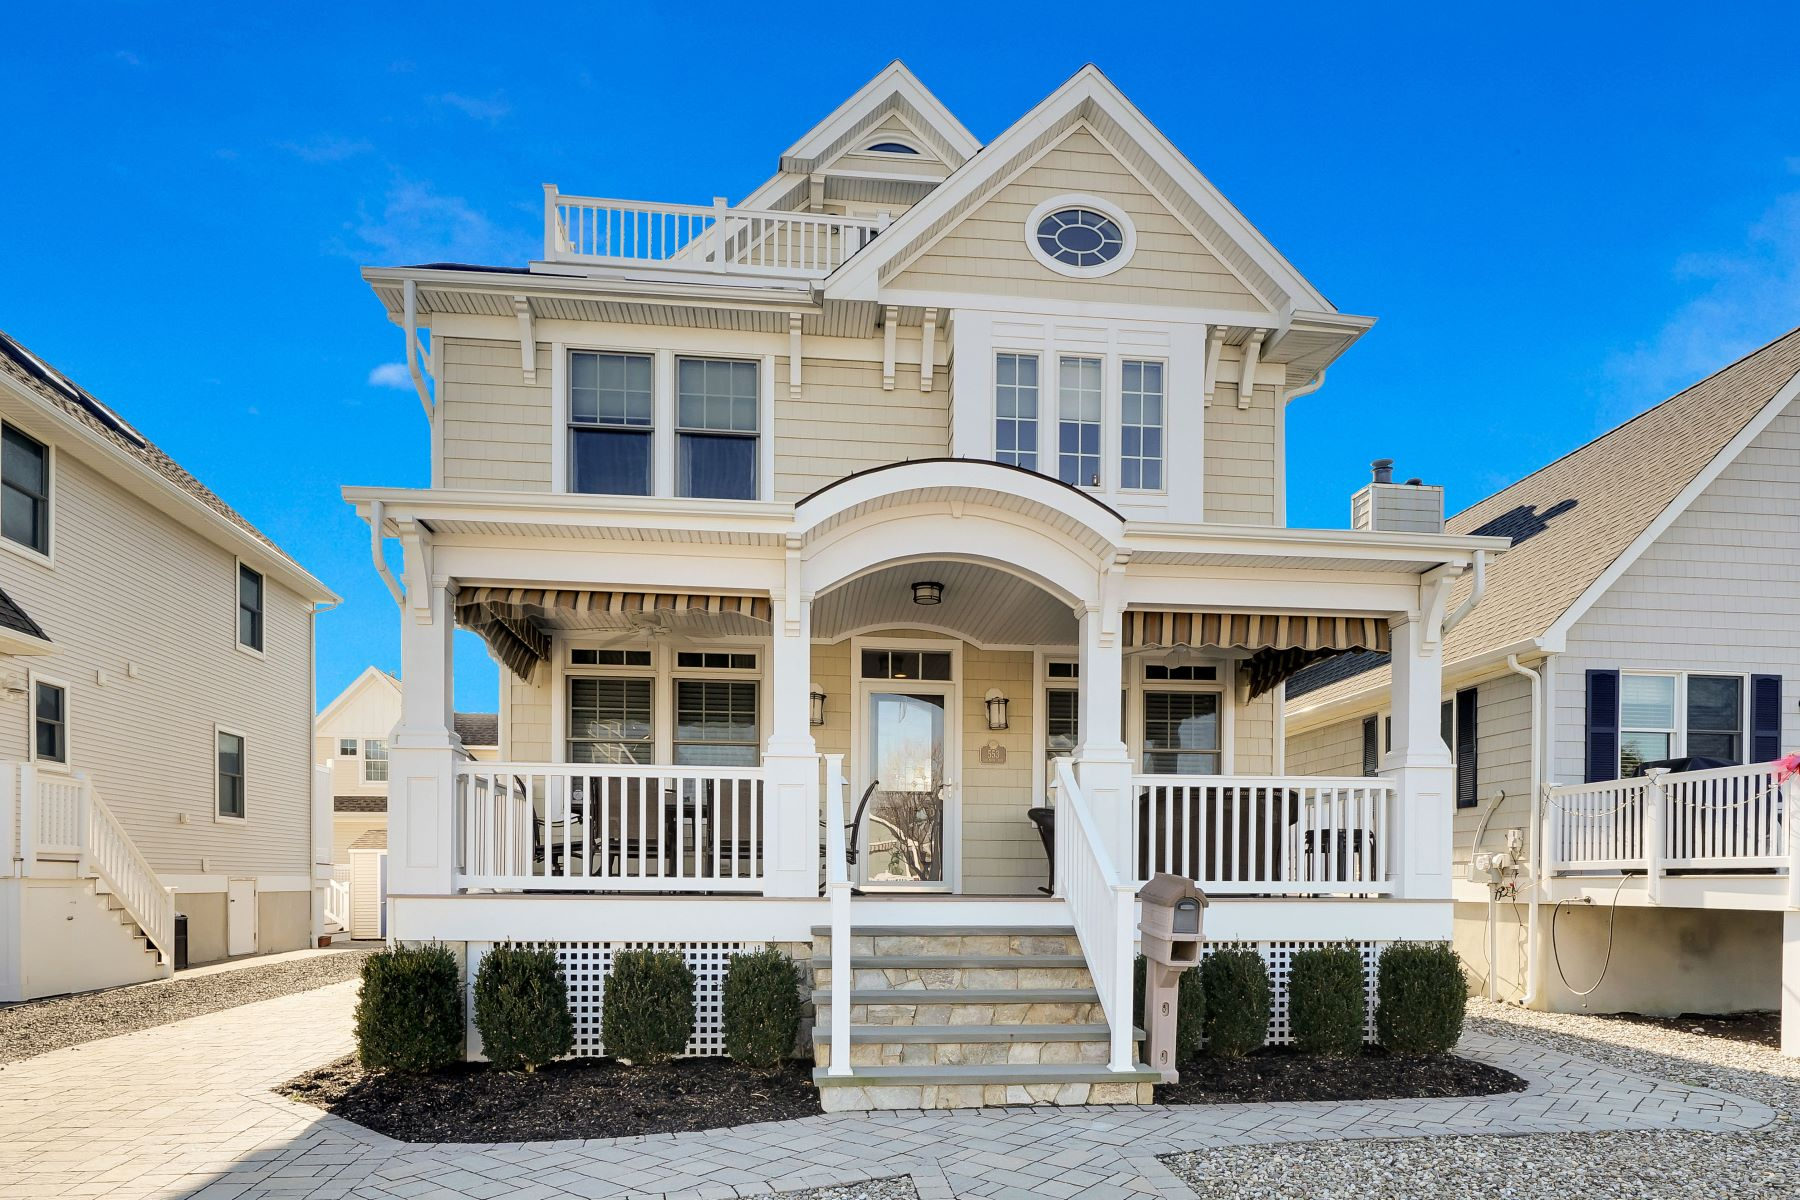 Single Family Home for Sale at Exceptional Coastal Home 553 Salmon Avenue Manasquan, New Jersey 08736 United States